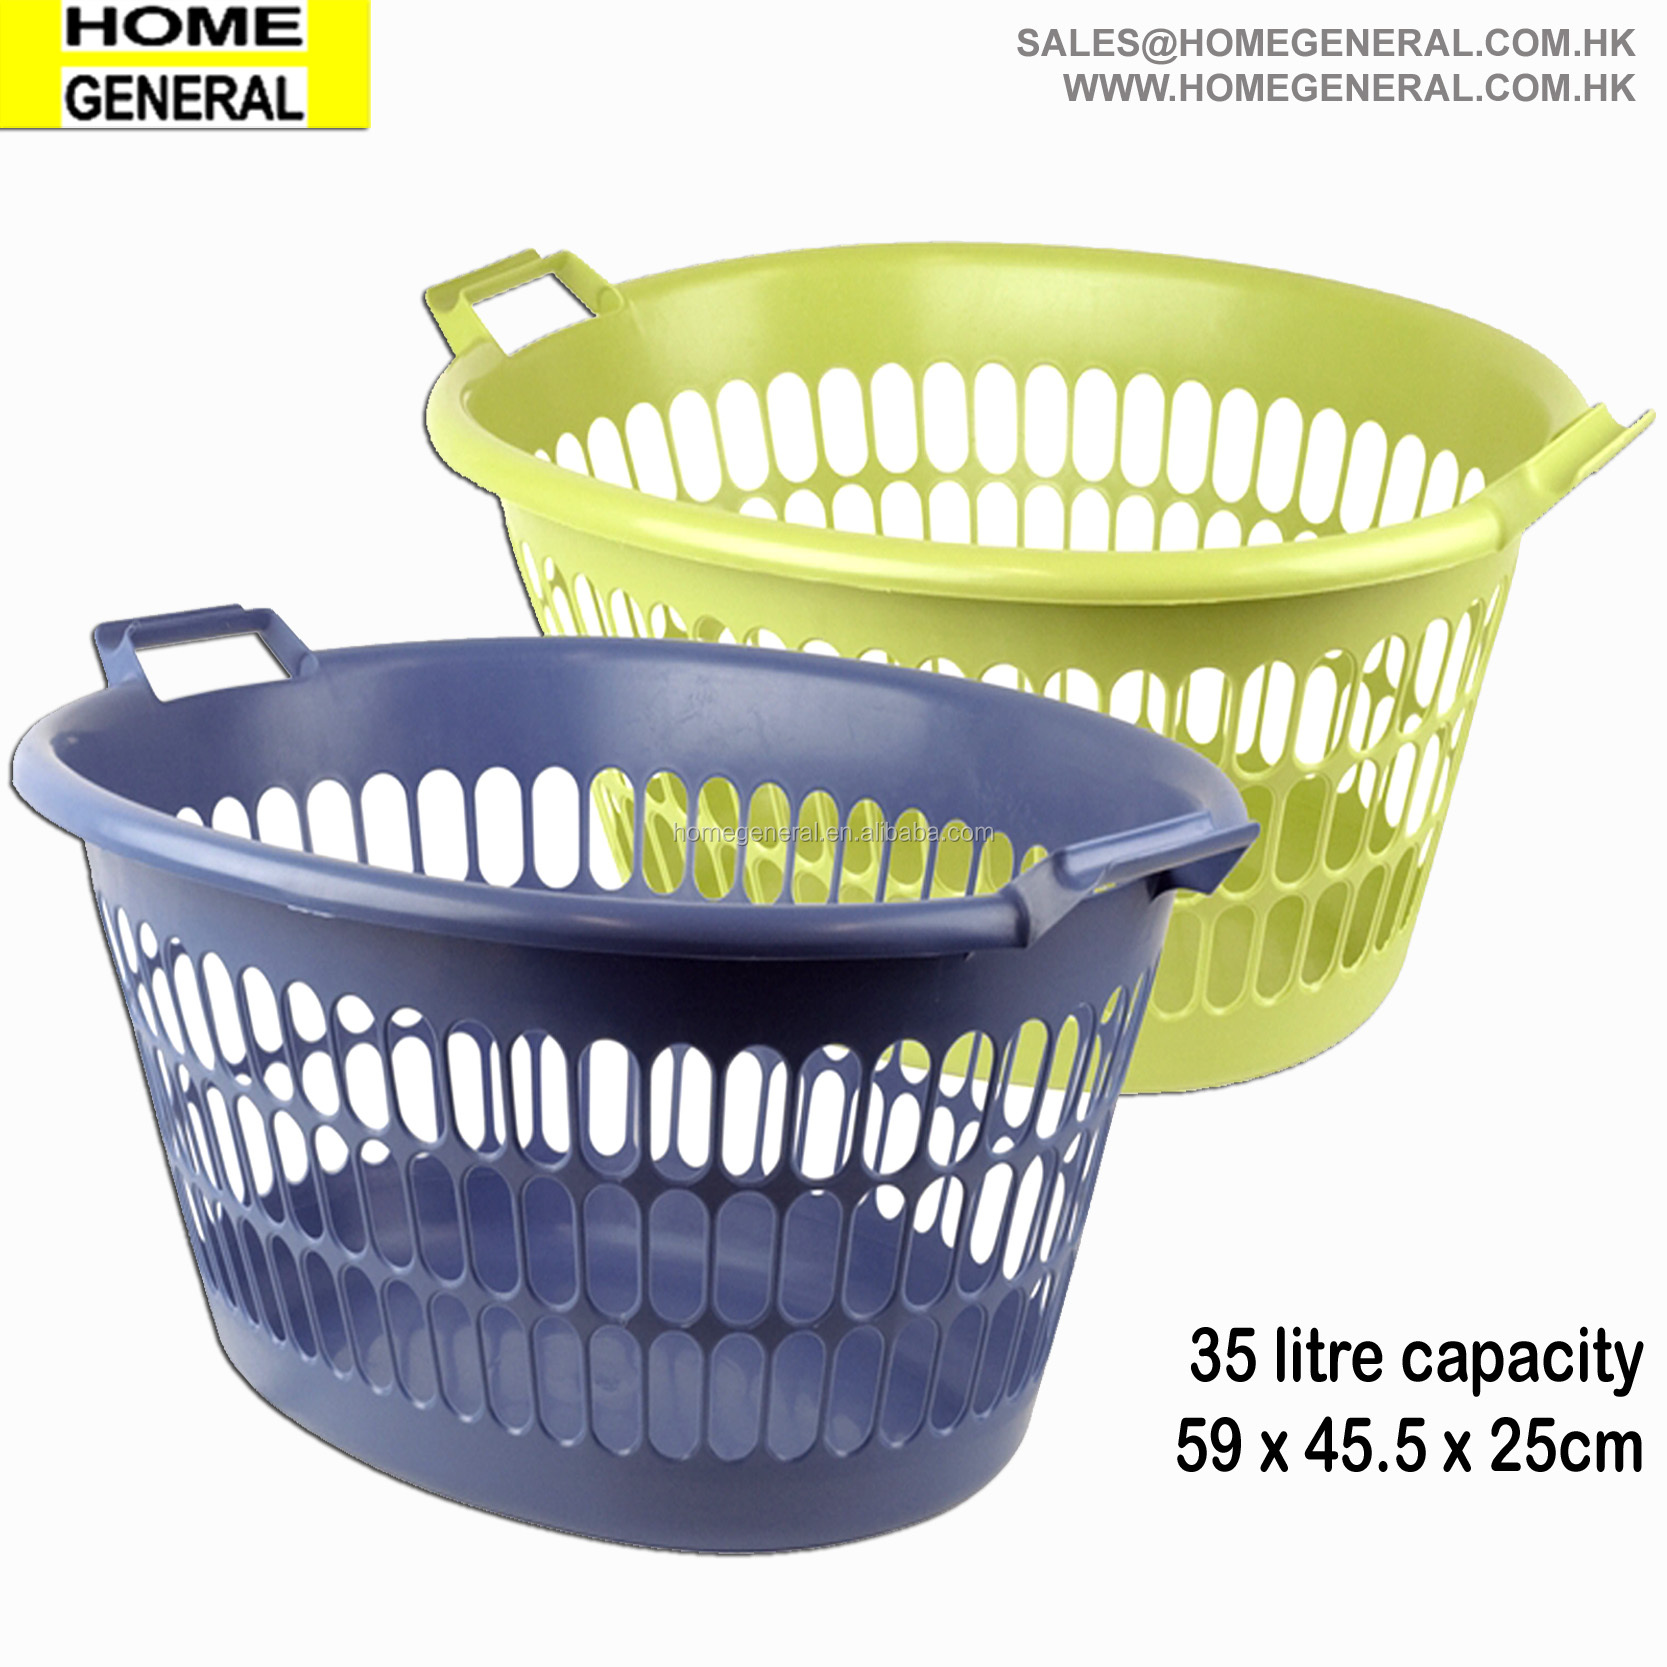 BASKET GENERAL HIP HUGGING STYLE FAMILY LAUNDRY BASKET WITH 3 HANDLES